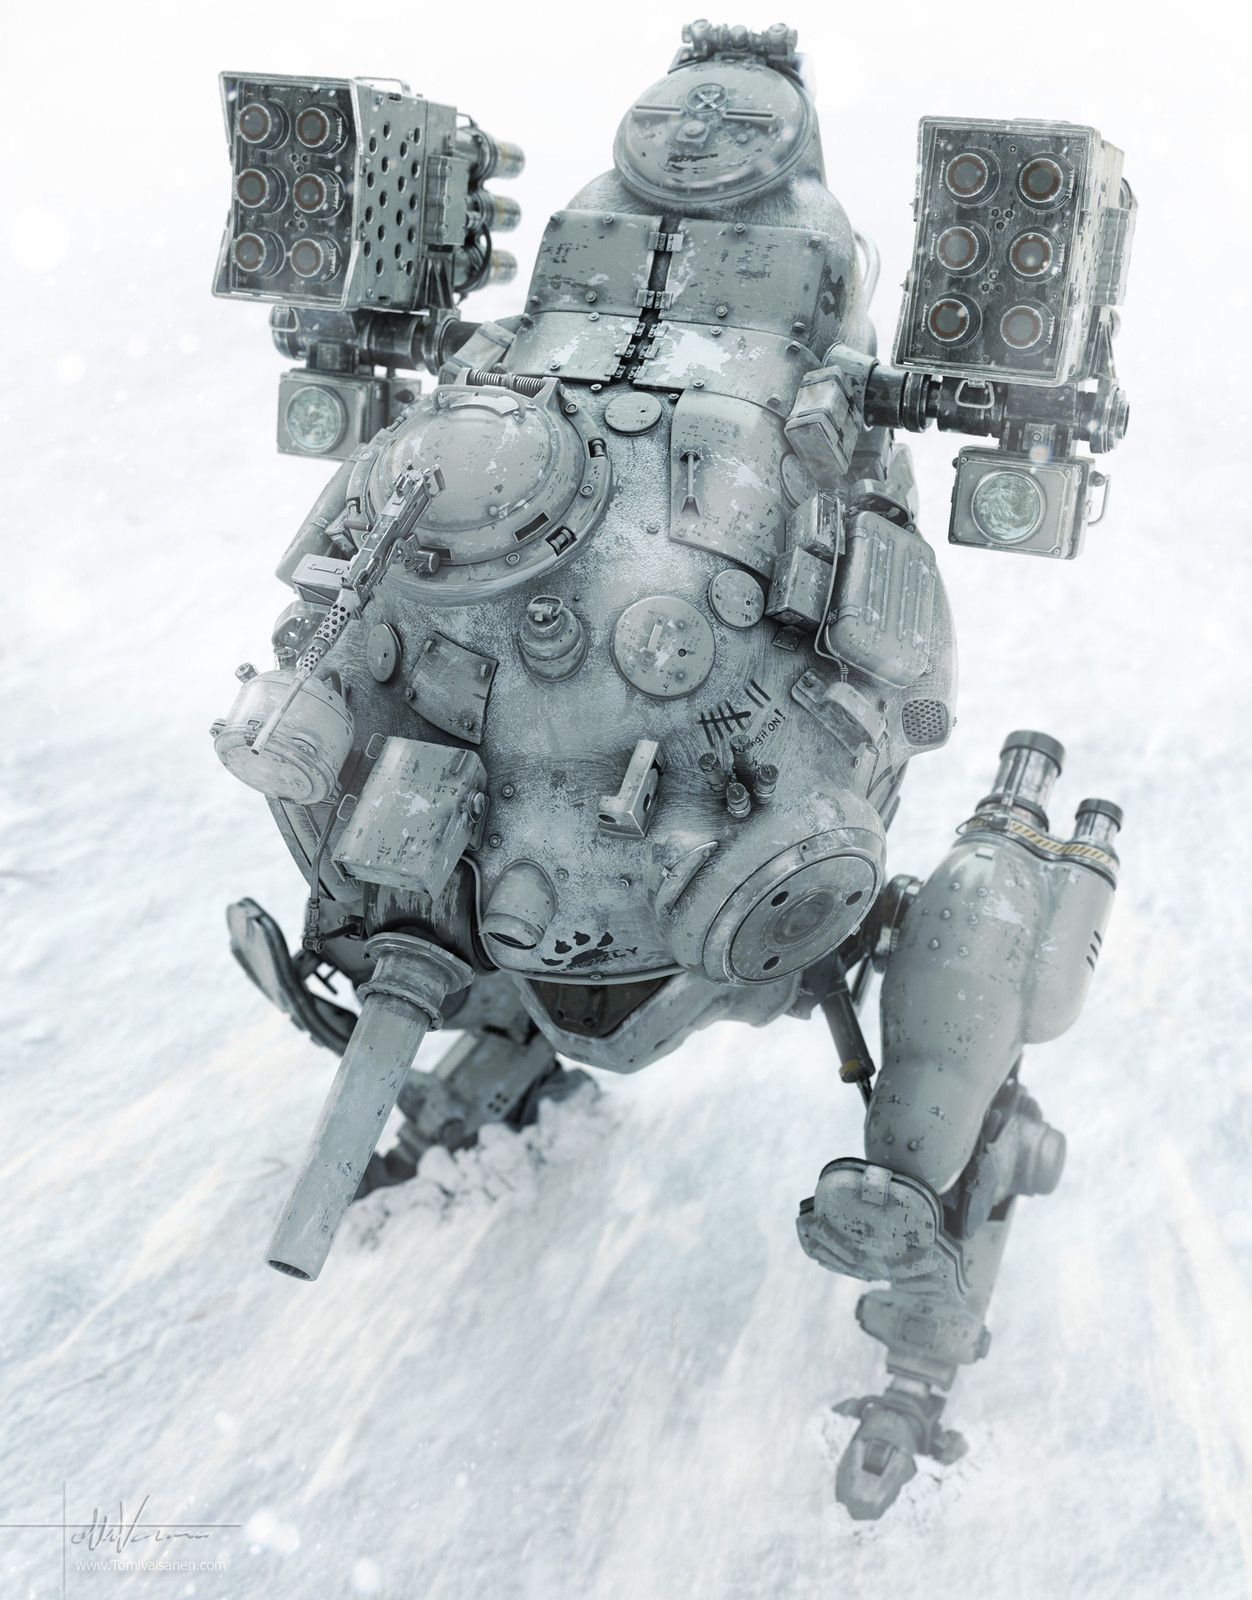 Snow Mech, Tomi Väisänen on ArtStation at https://www.artstation.com/artwork/eQlz3